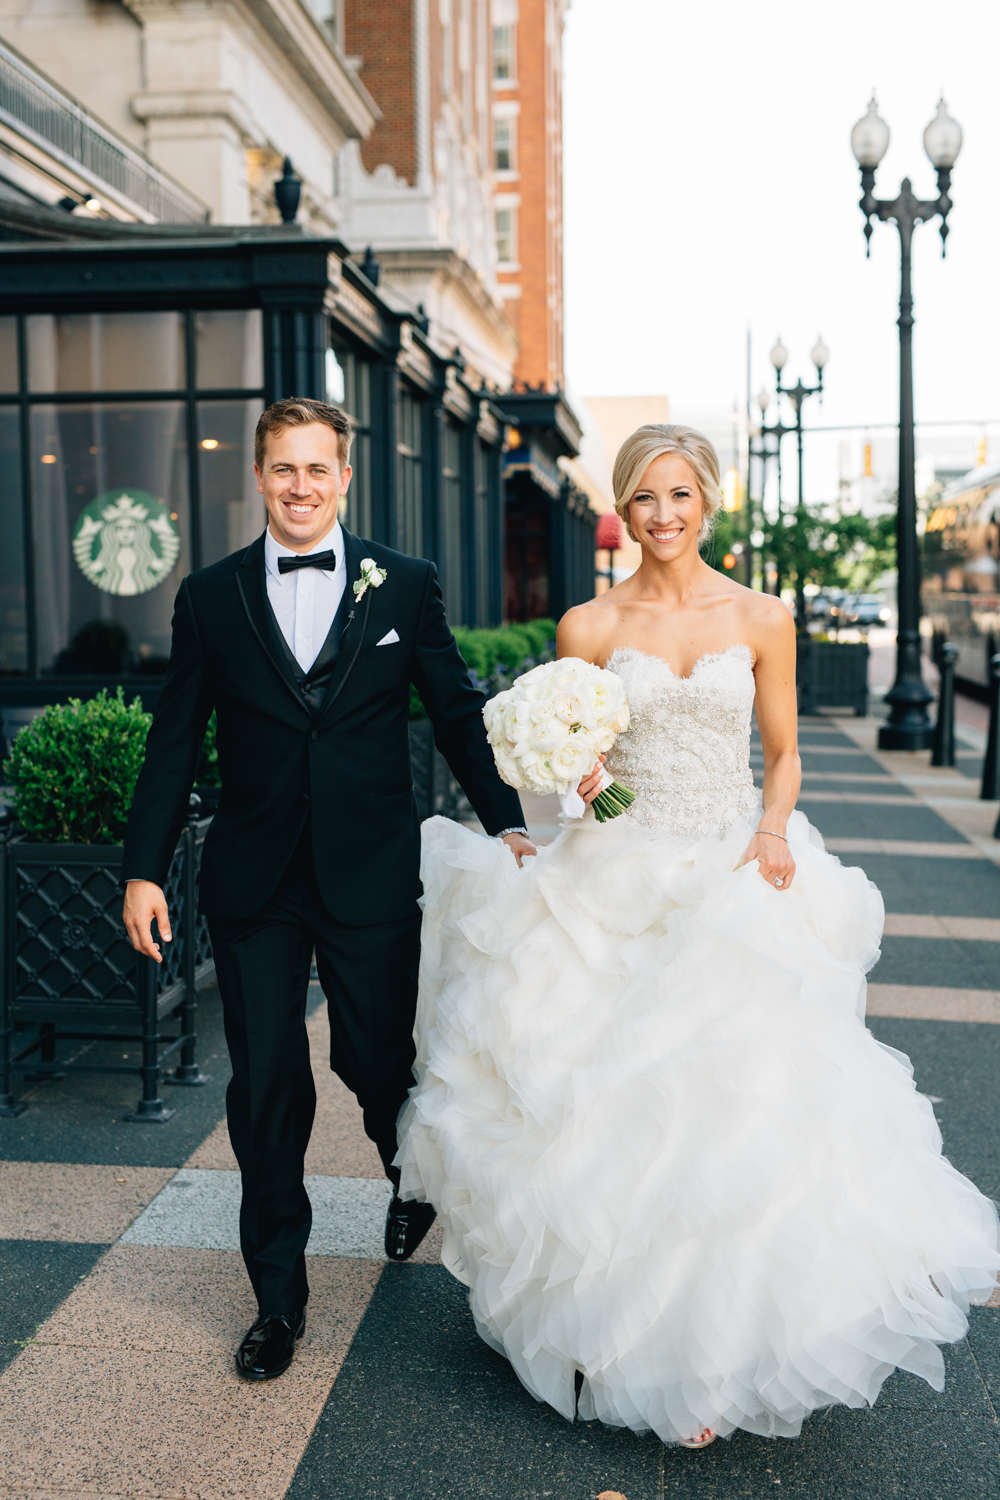 Downtown Grand Rapids, Michigan Cute Bride and Groom Photos